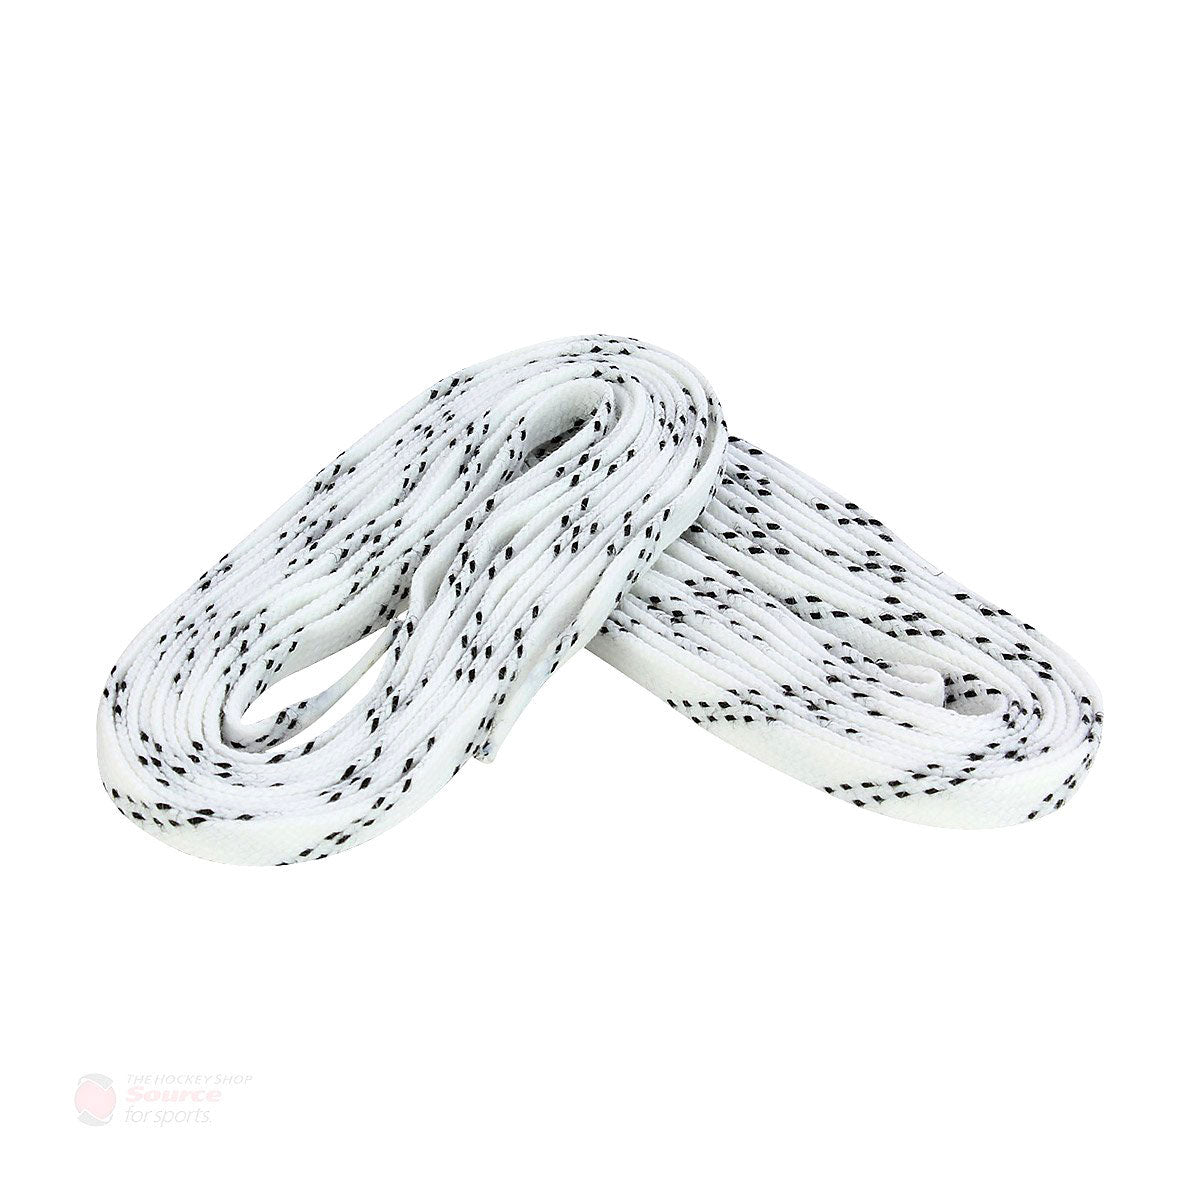 Pro Edge Waxed Laces - White